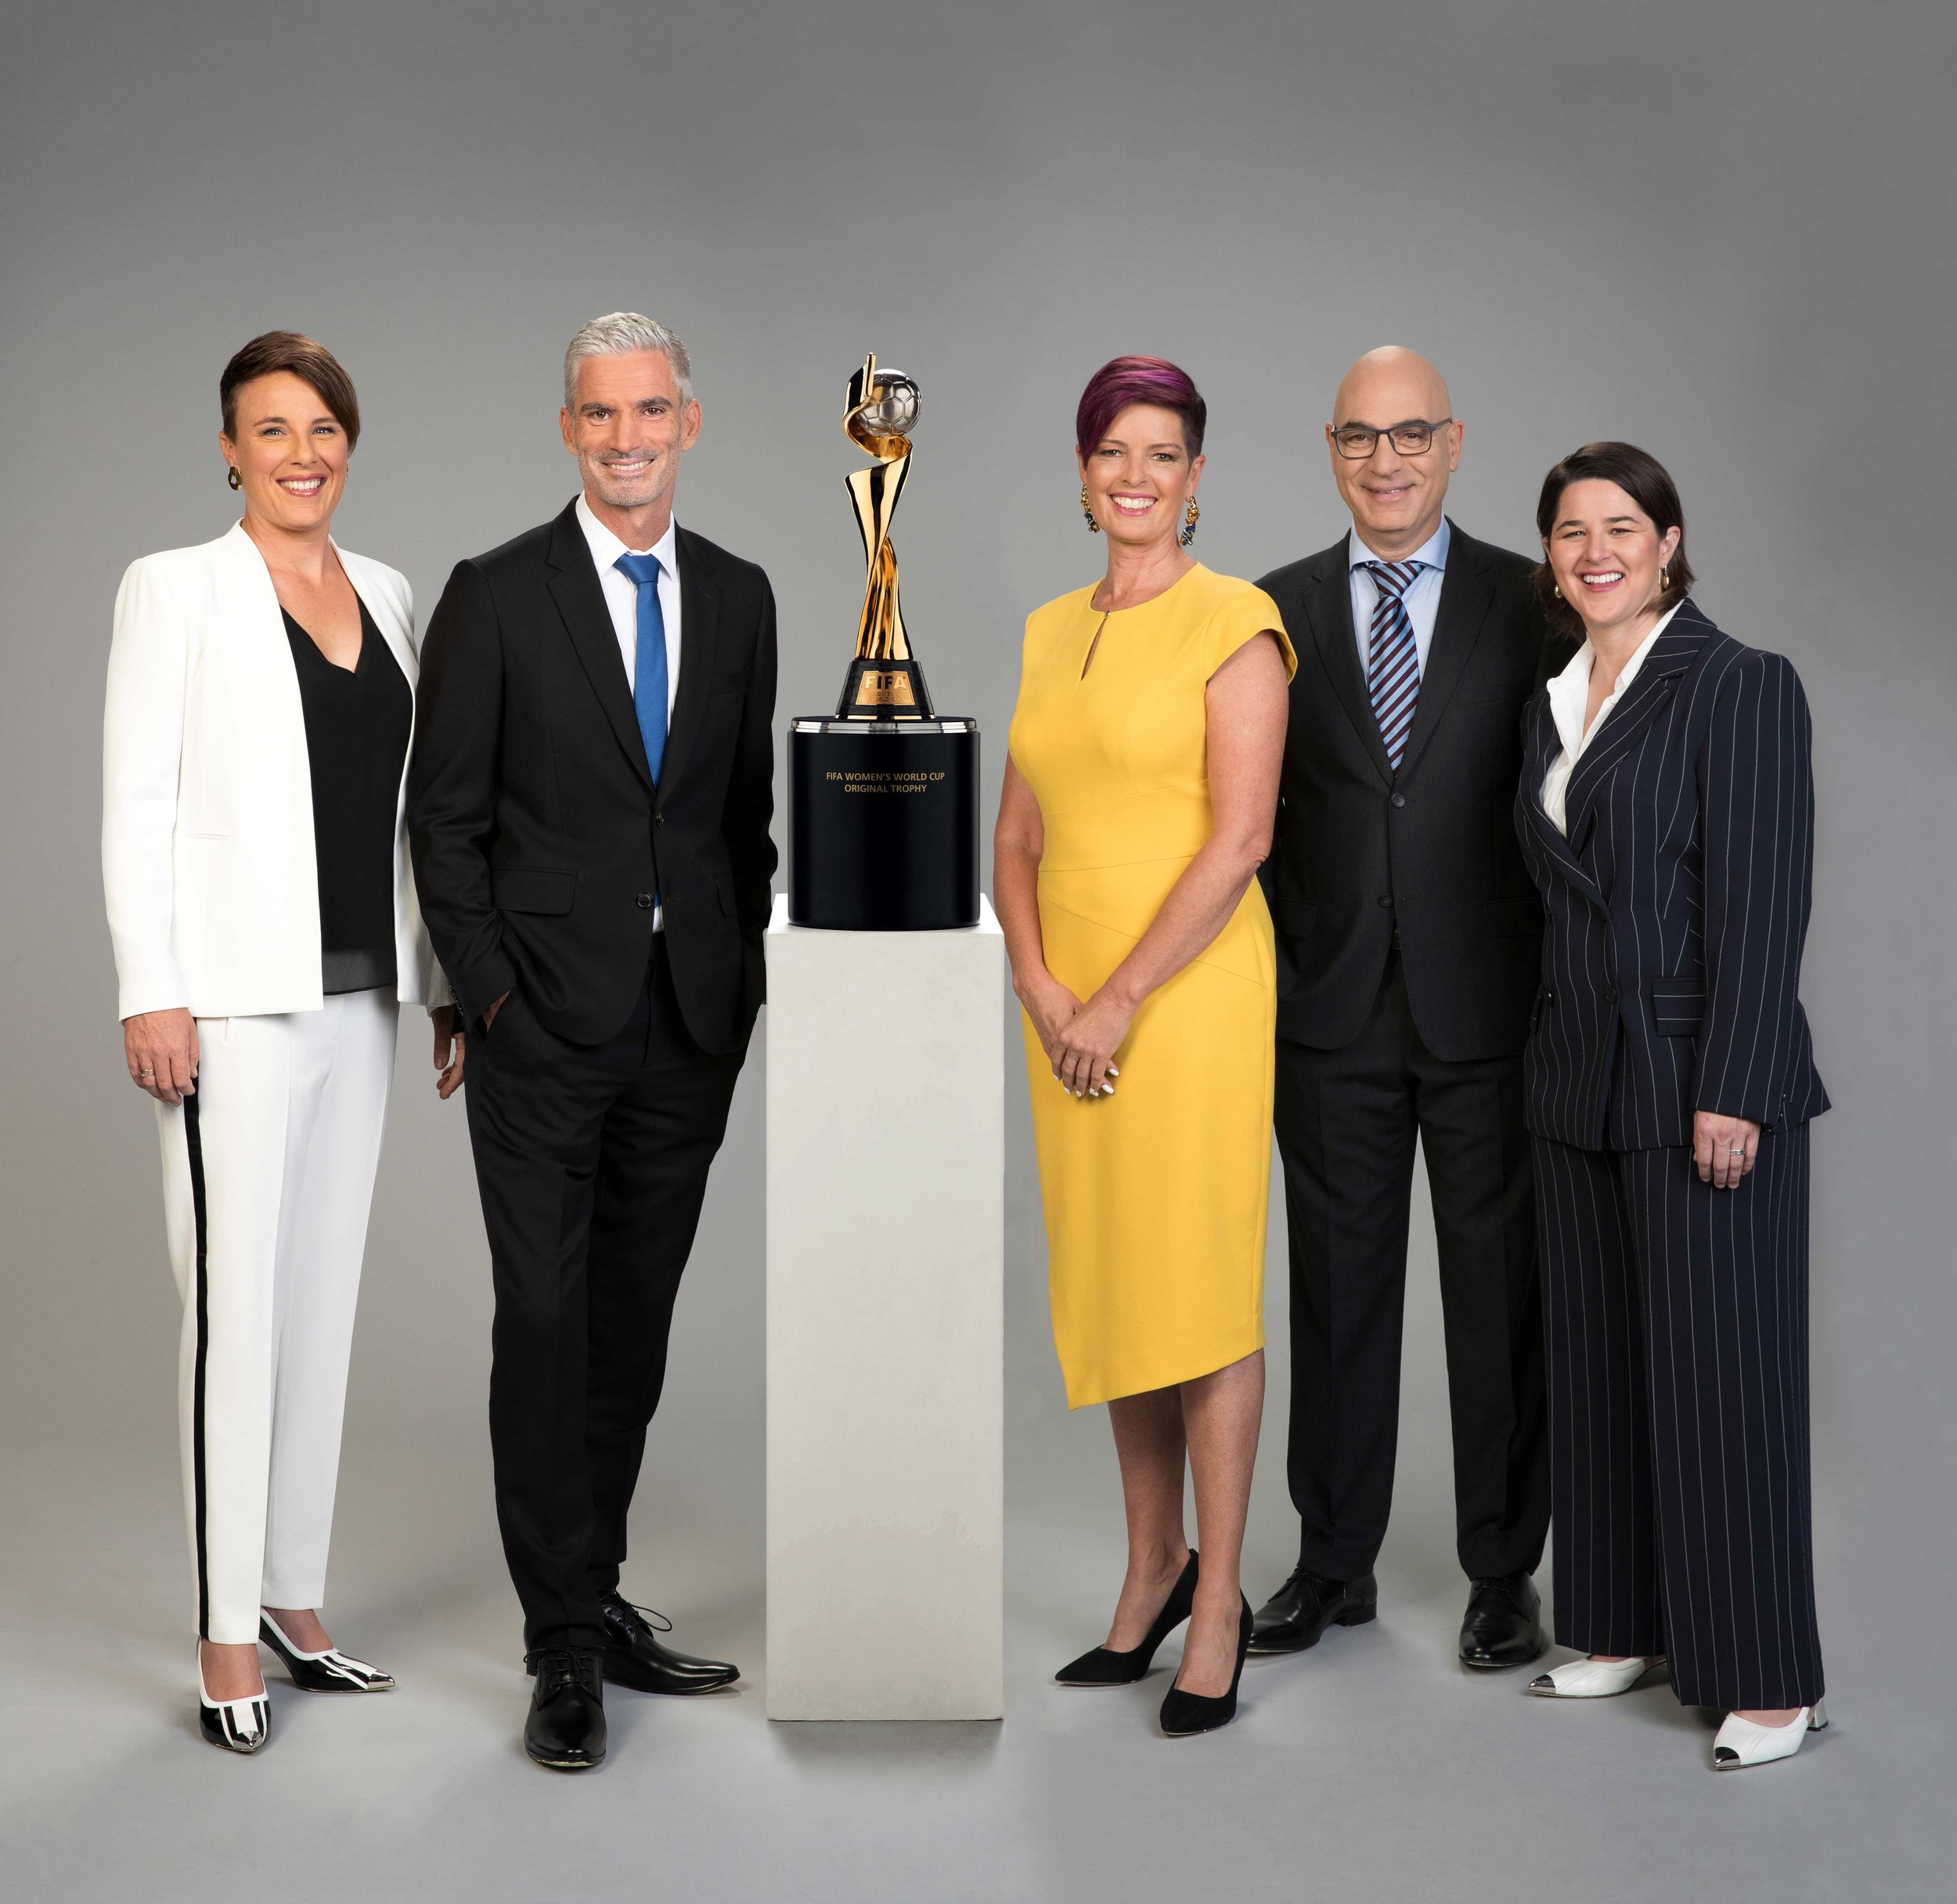 Joey Peters, Craig Foster, Tracey Holmes, David Basheer, and Sarah Walsh  image - SBS